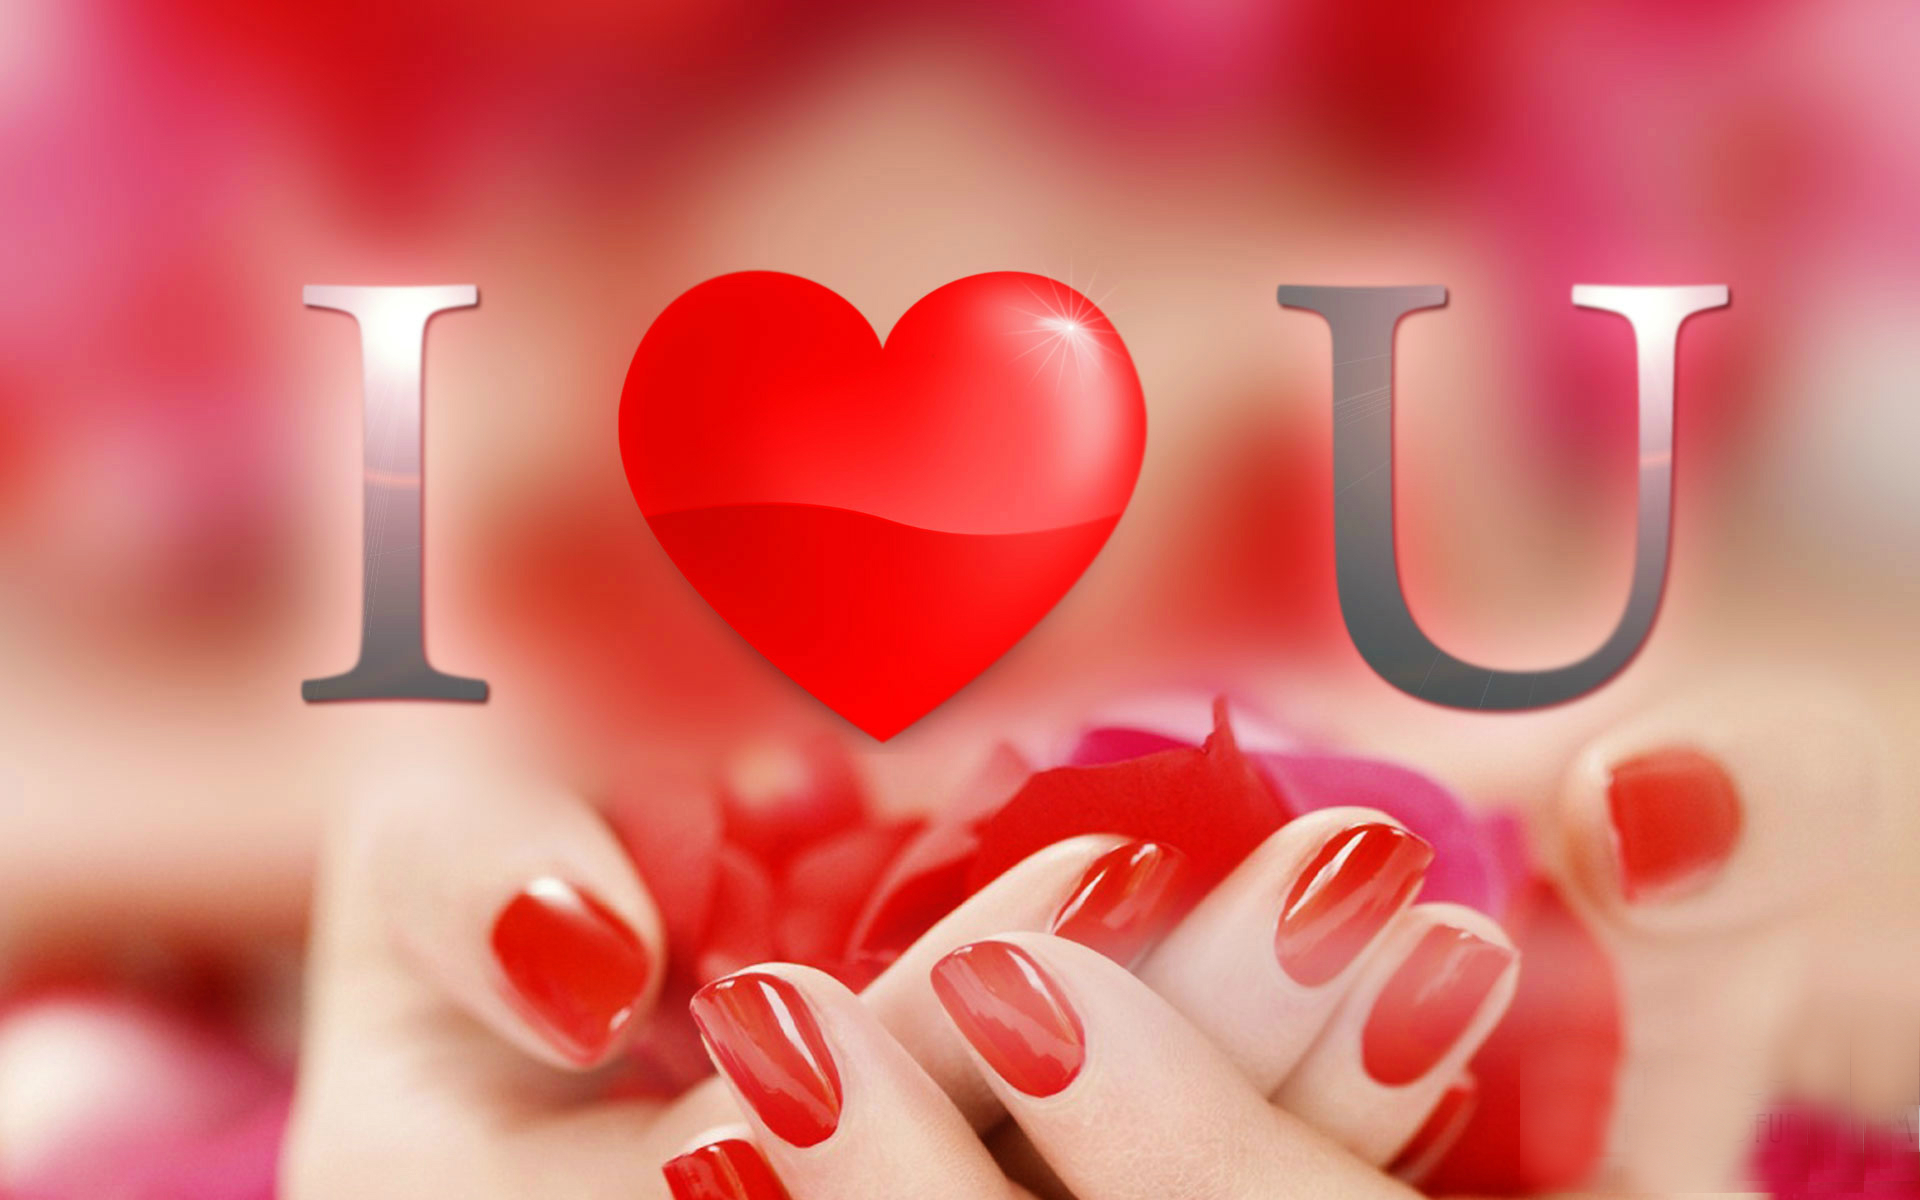 Free Download Download Beautiful Love Hd Wallpapers At Wallbeam